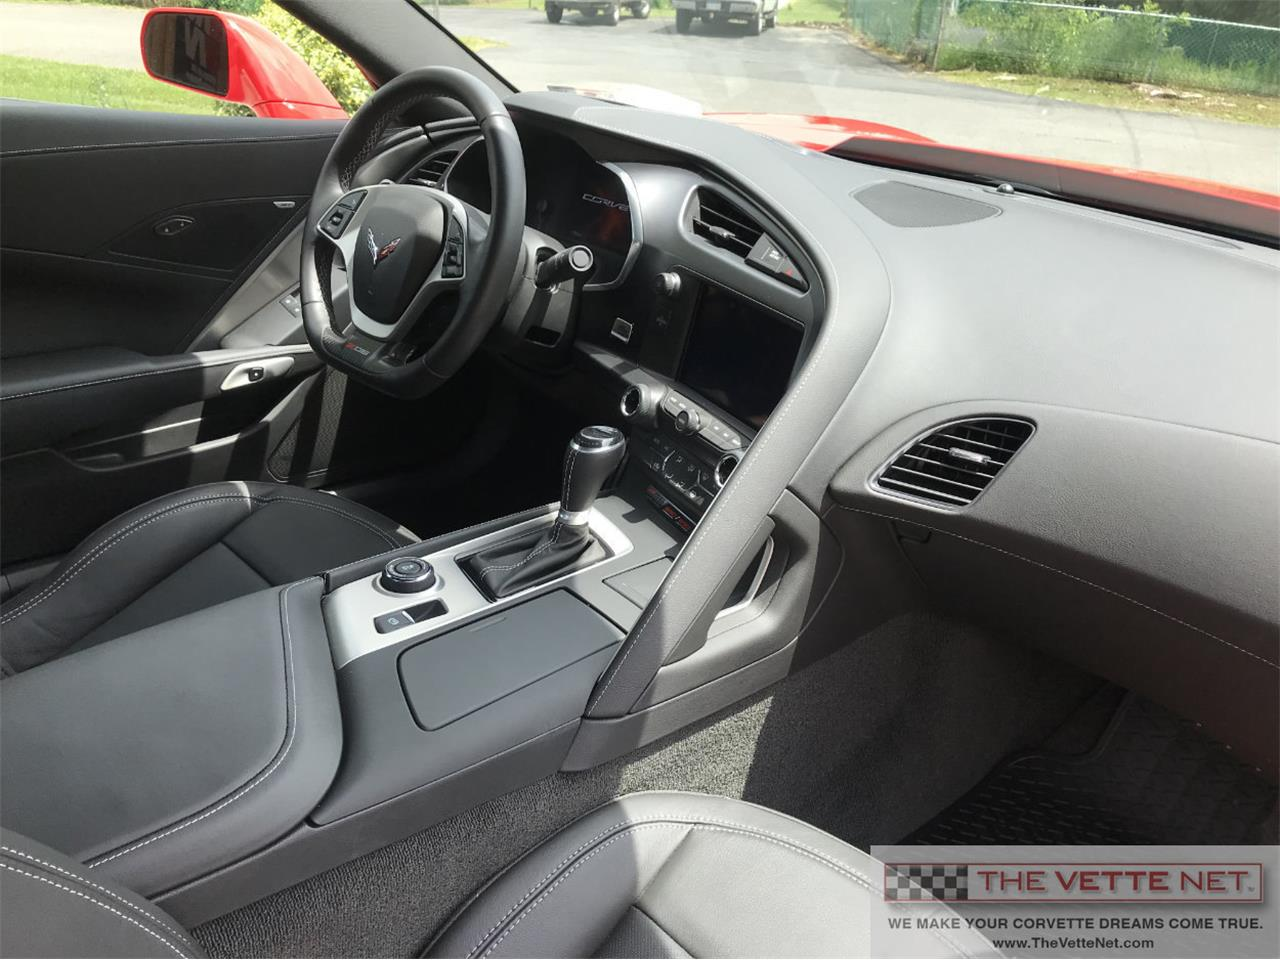 2016 Chevrolet Corvette (CC-1228673) for sale in Sarasota, Florida